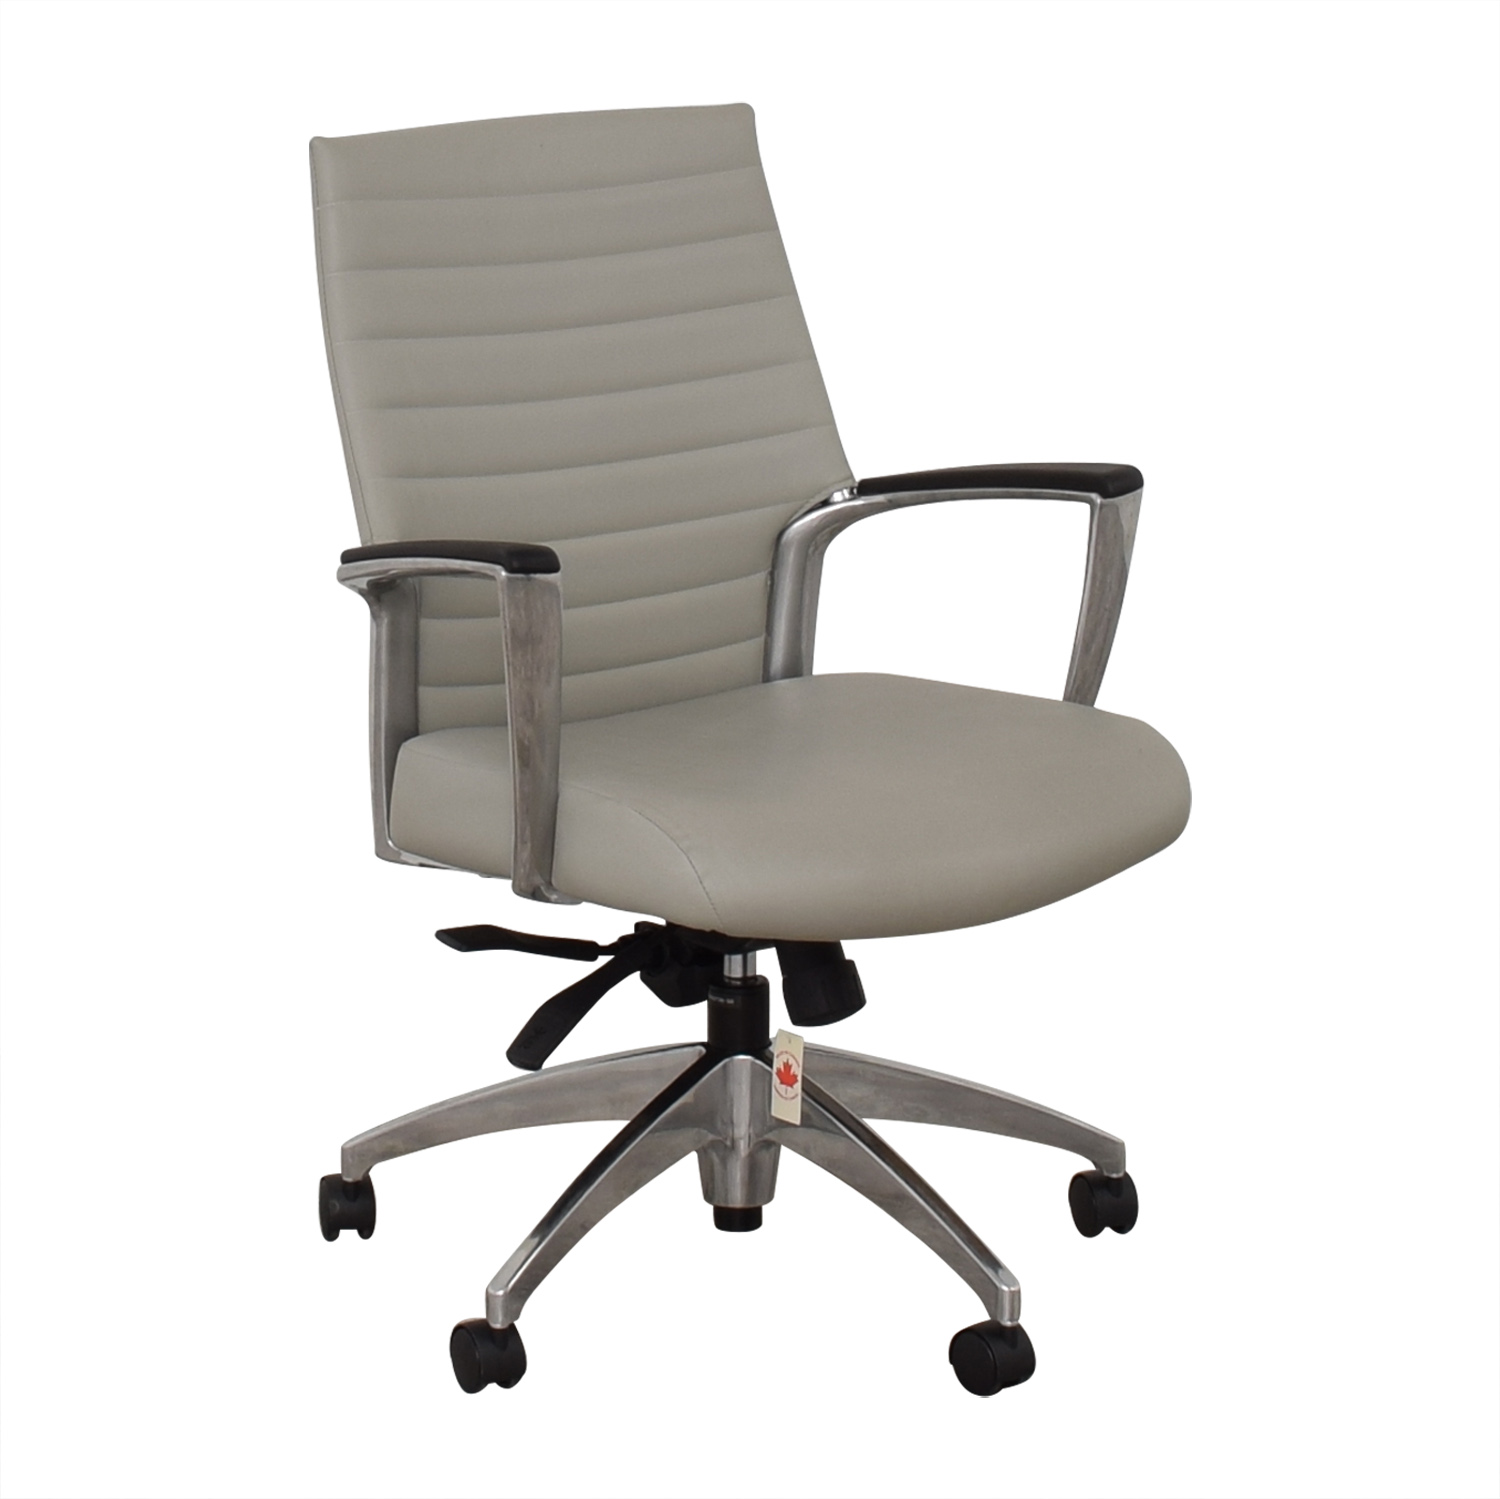 Global Accord Upholstered Medium Back Tilter Chair / Home Office Chairs